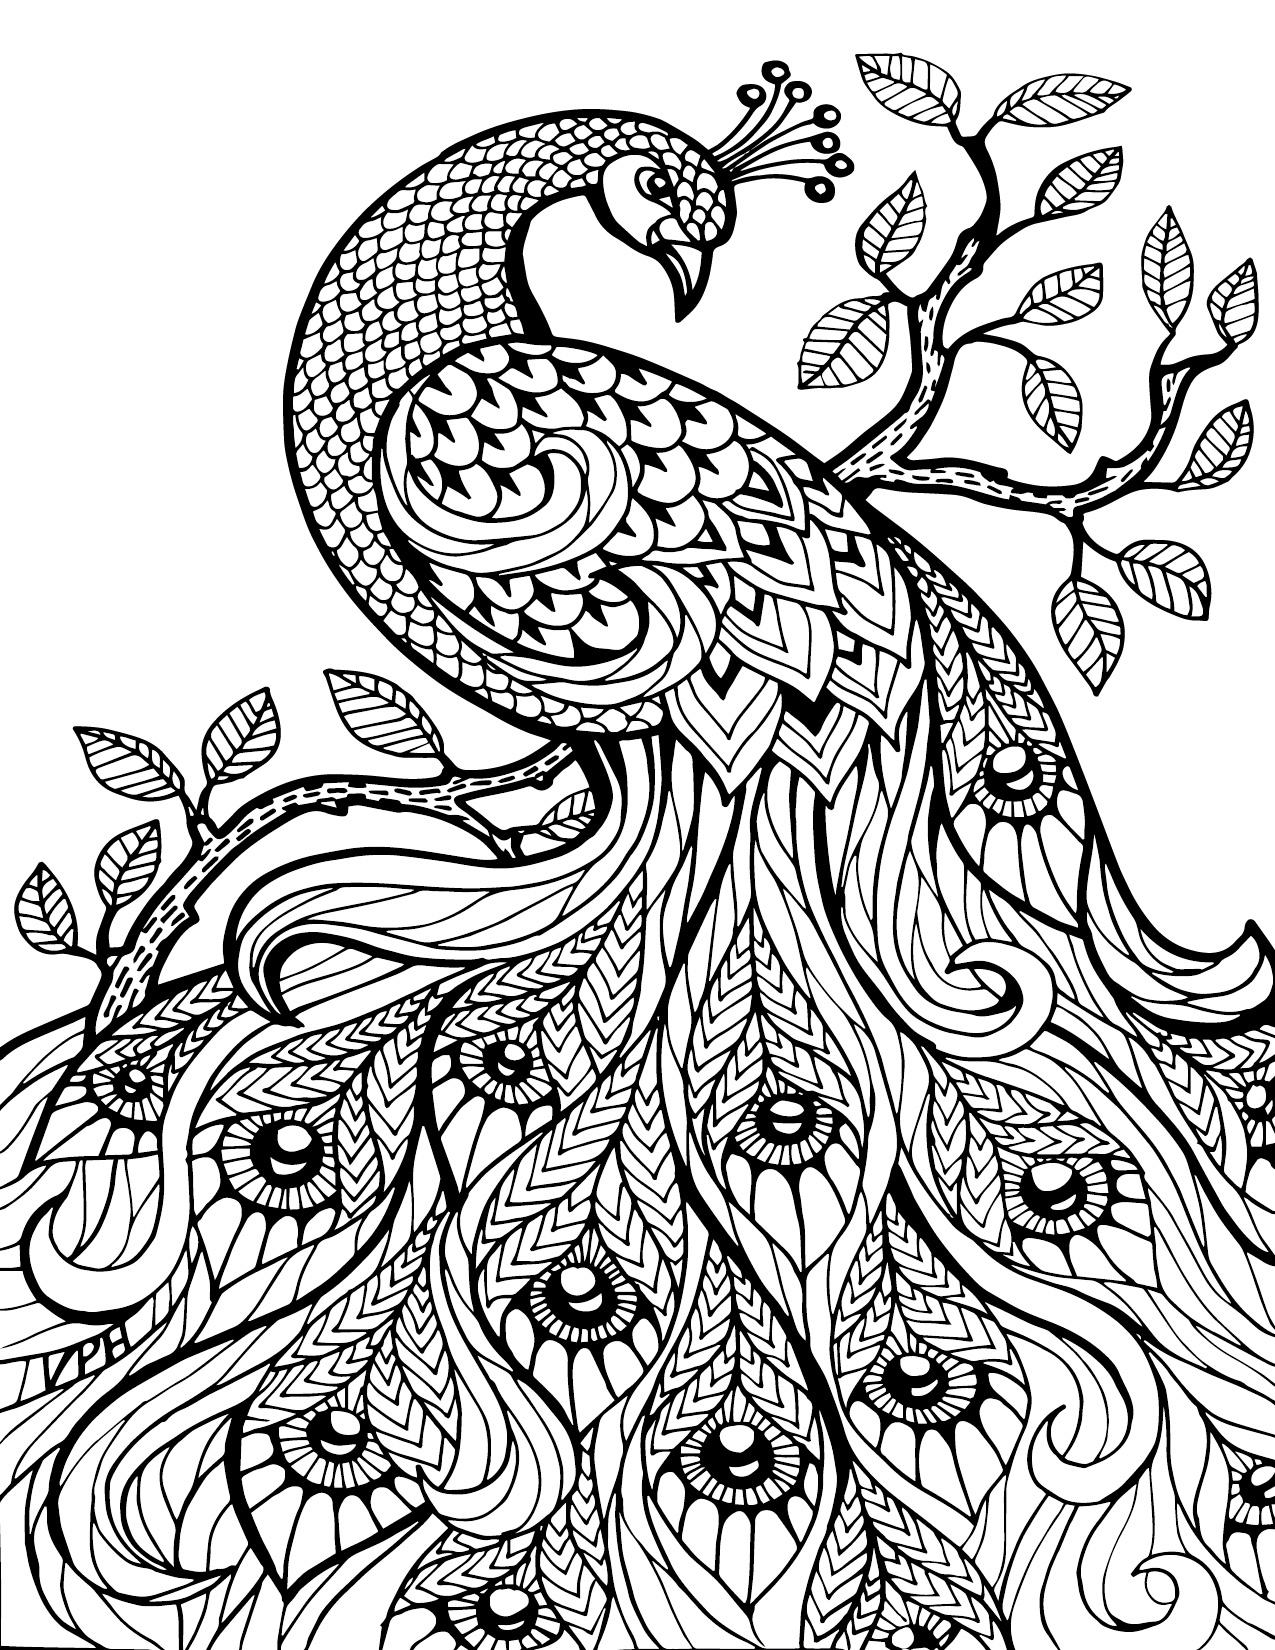 Downloadable Adult Coloring Pages at GetDrawings.com | Free for ...